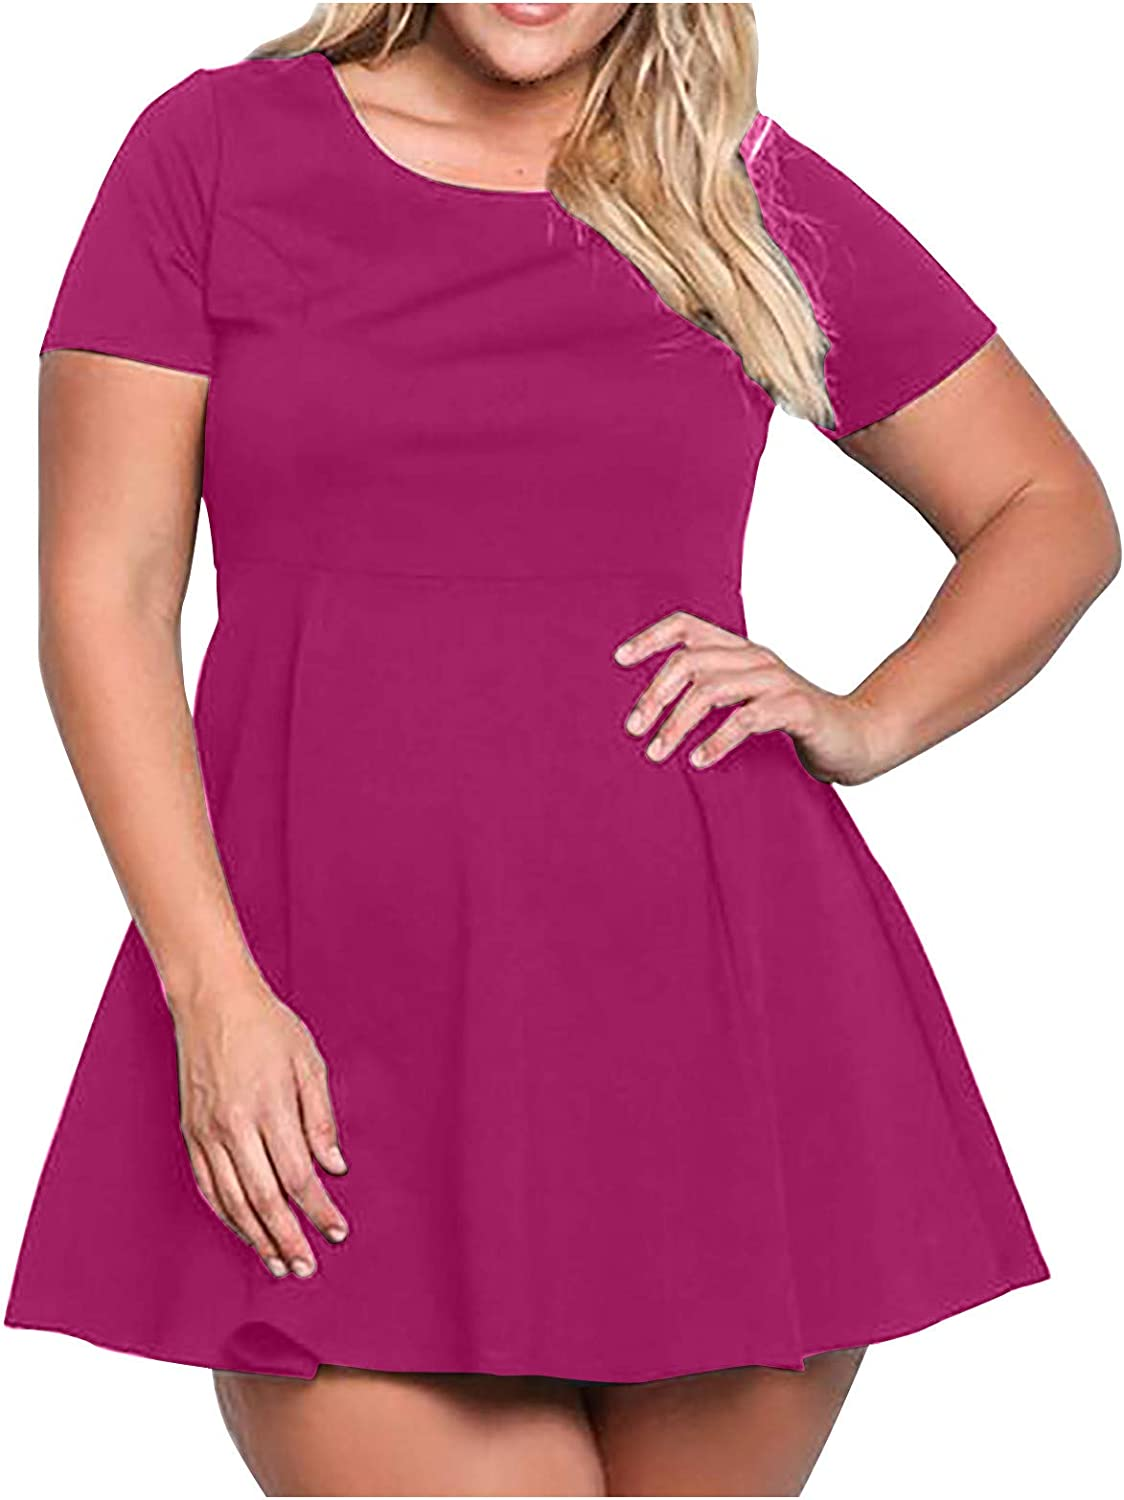 Women's Round Neck Short San Diego Mall Sleeve Dress Fashion Product Size Plus Casual S